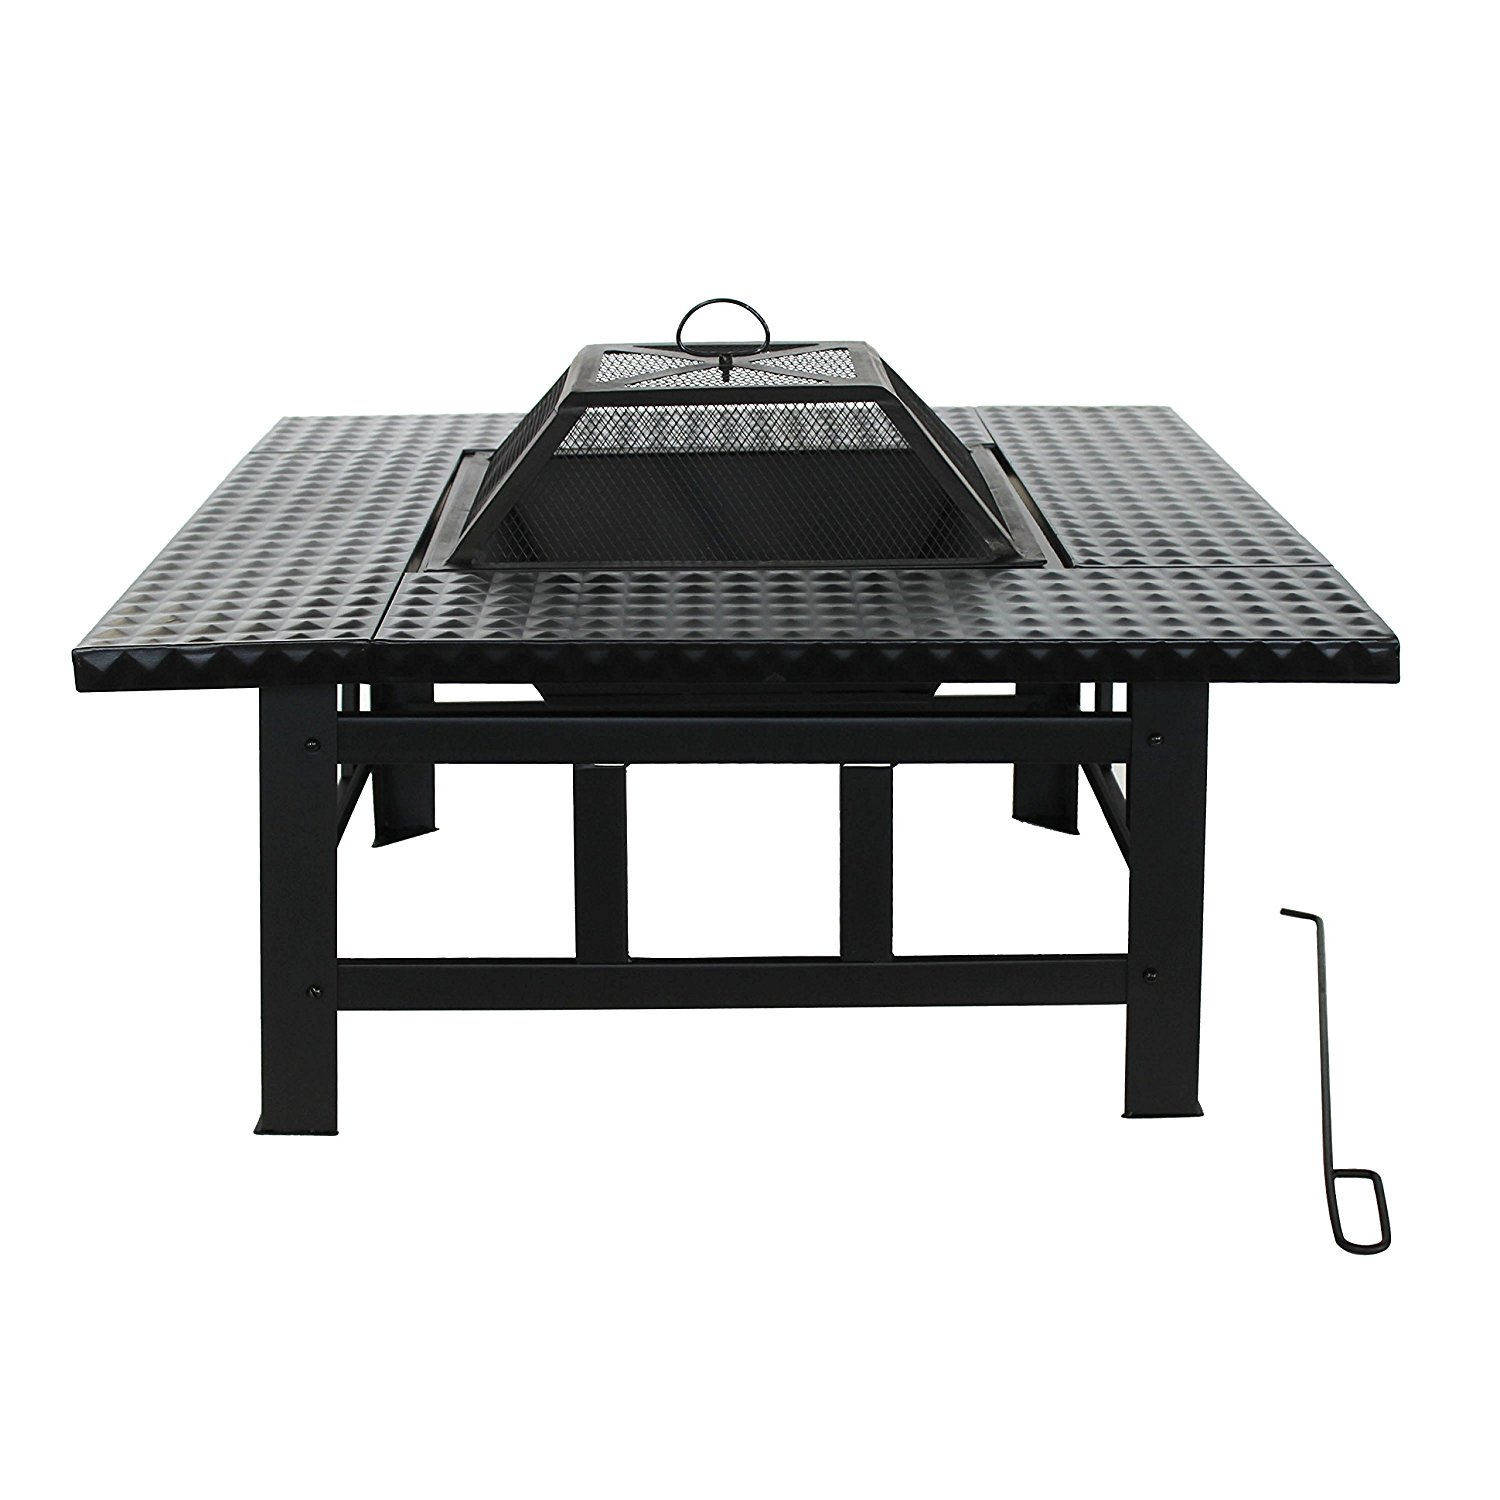 FP010 Heavy Duty Steel Table Top Fire Pit Kit with Flame Retardant Lid and Poker